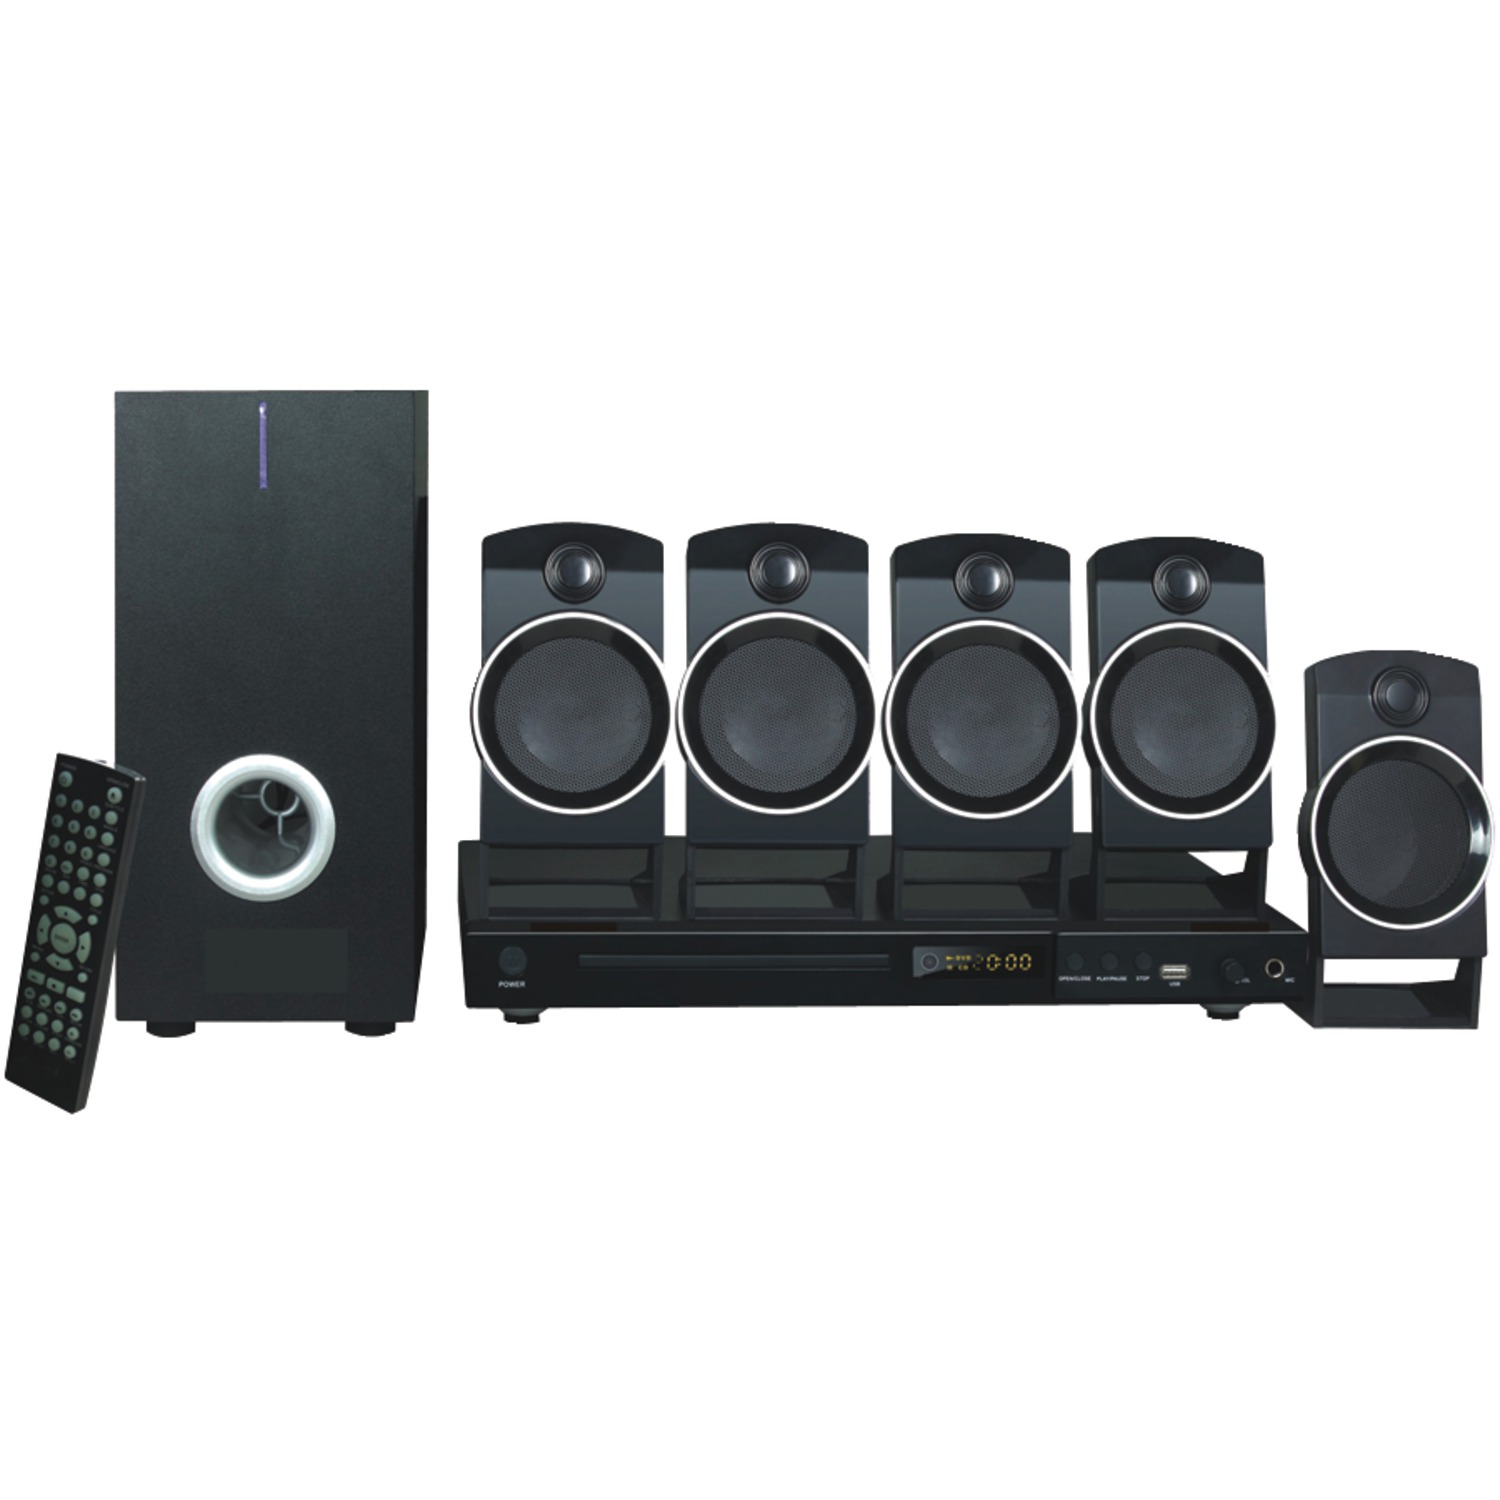 Naxa ND-859 5.1-Channel DVD & Karaoke Entertainment System